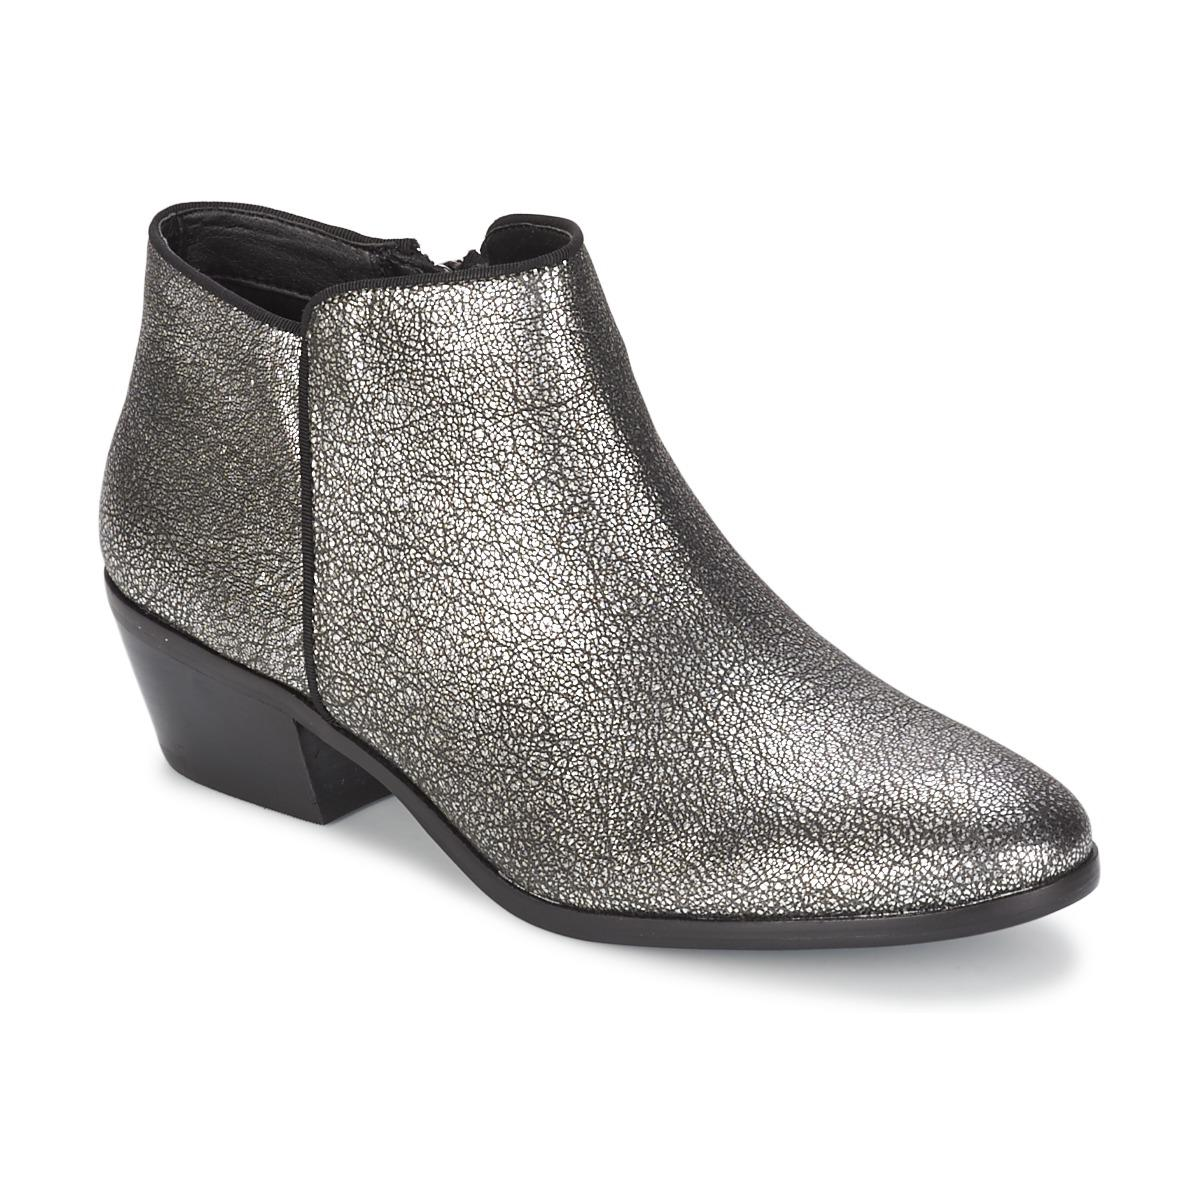 a3c714bb74b4 Sam Edelman Petty Women s Low Ankle Boots In Silver in Metallic - Lyst